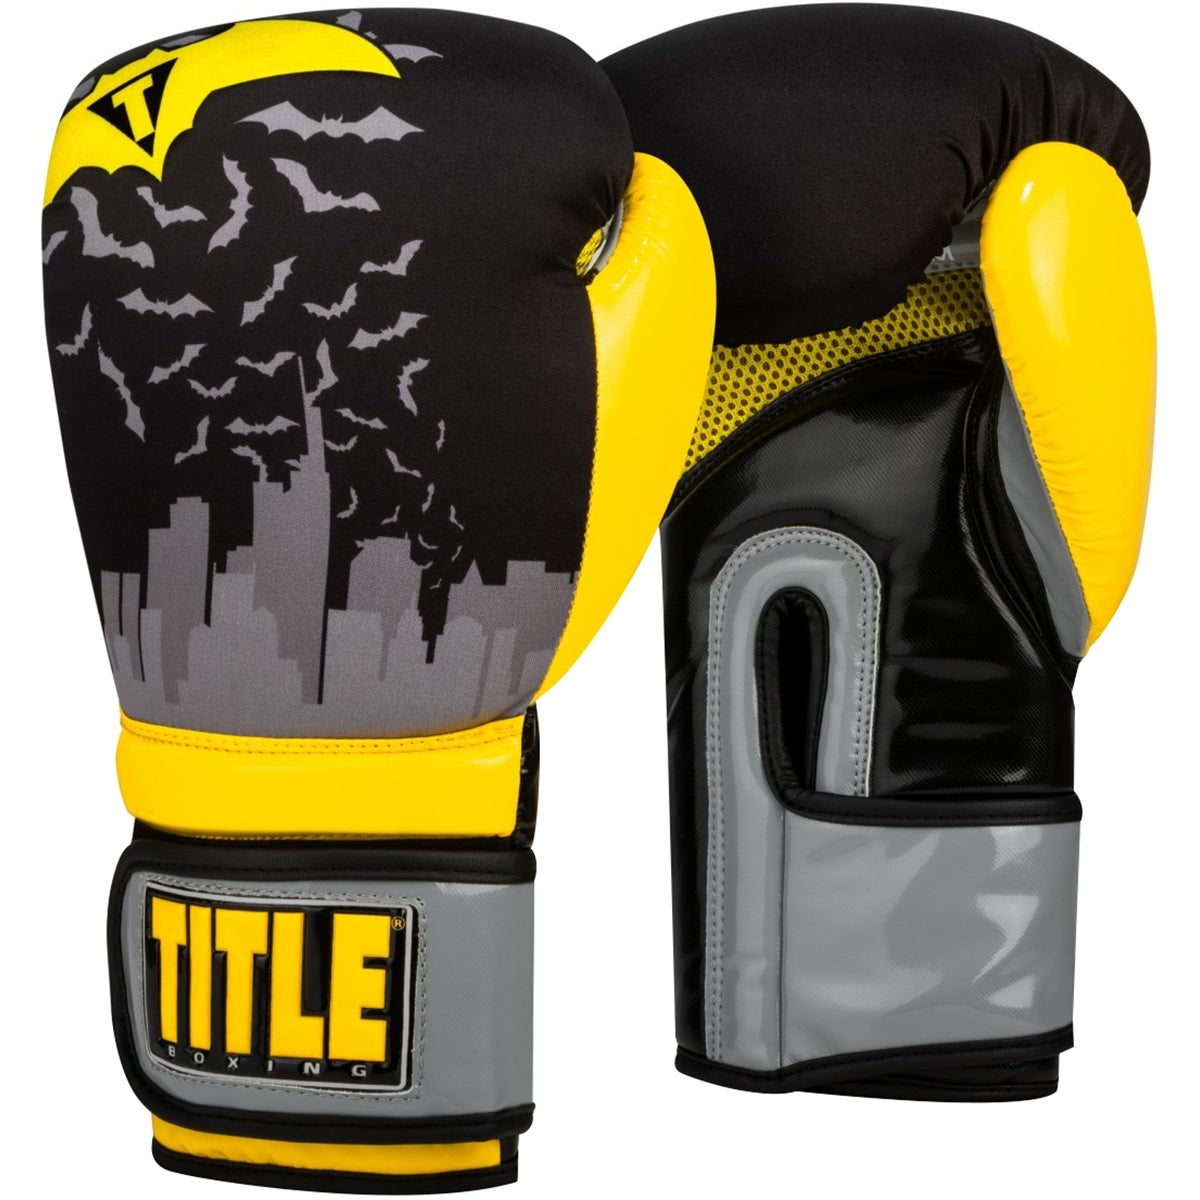 Goliath Title Boxing Infused Foam Training Boxing Gloves